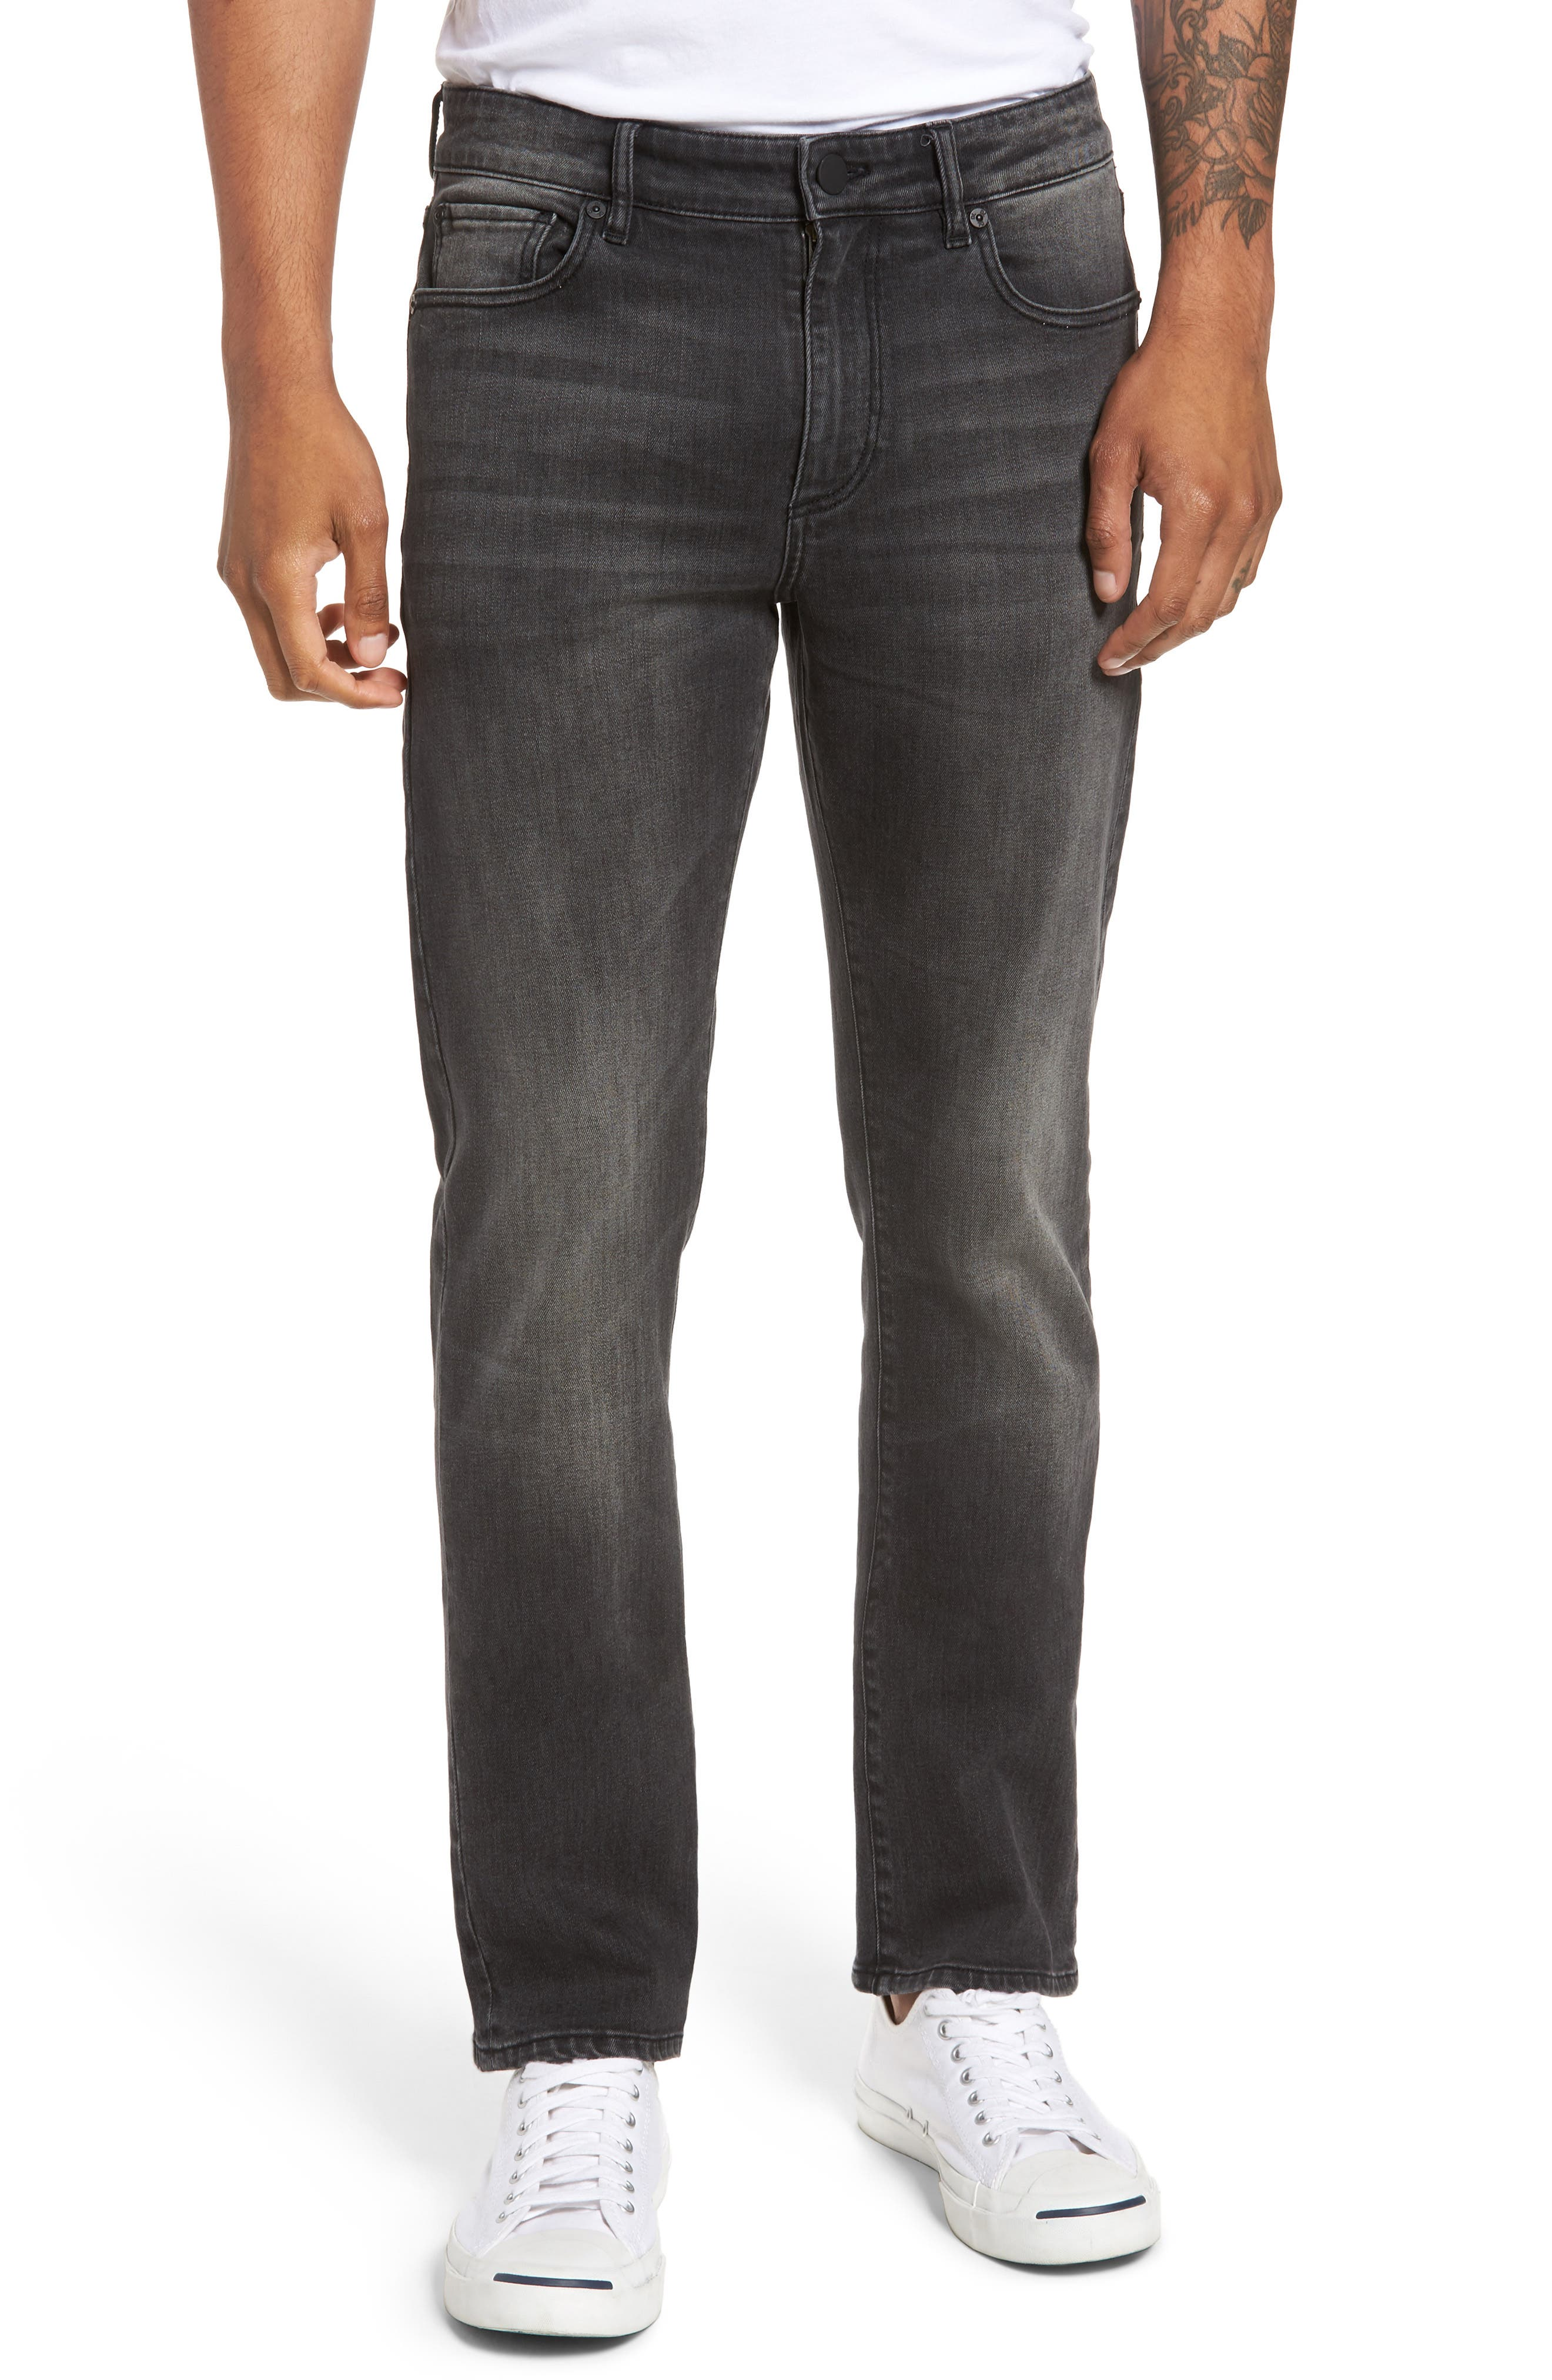 Russell Slim Straight Fit Jeans,                             Main thumbnail 1, color,                             020